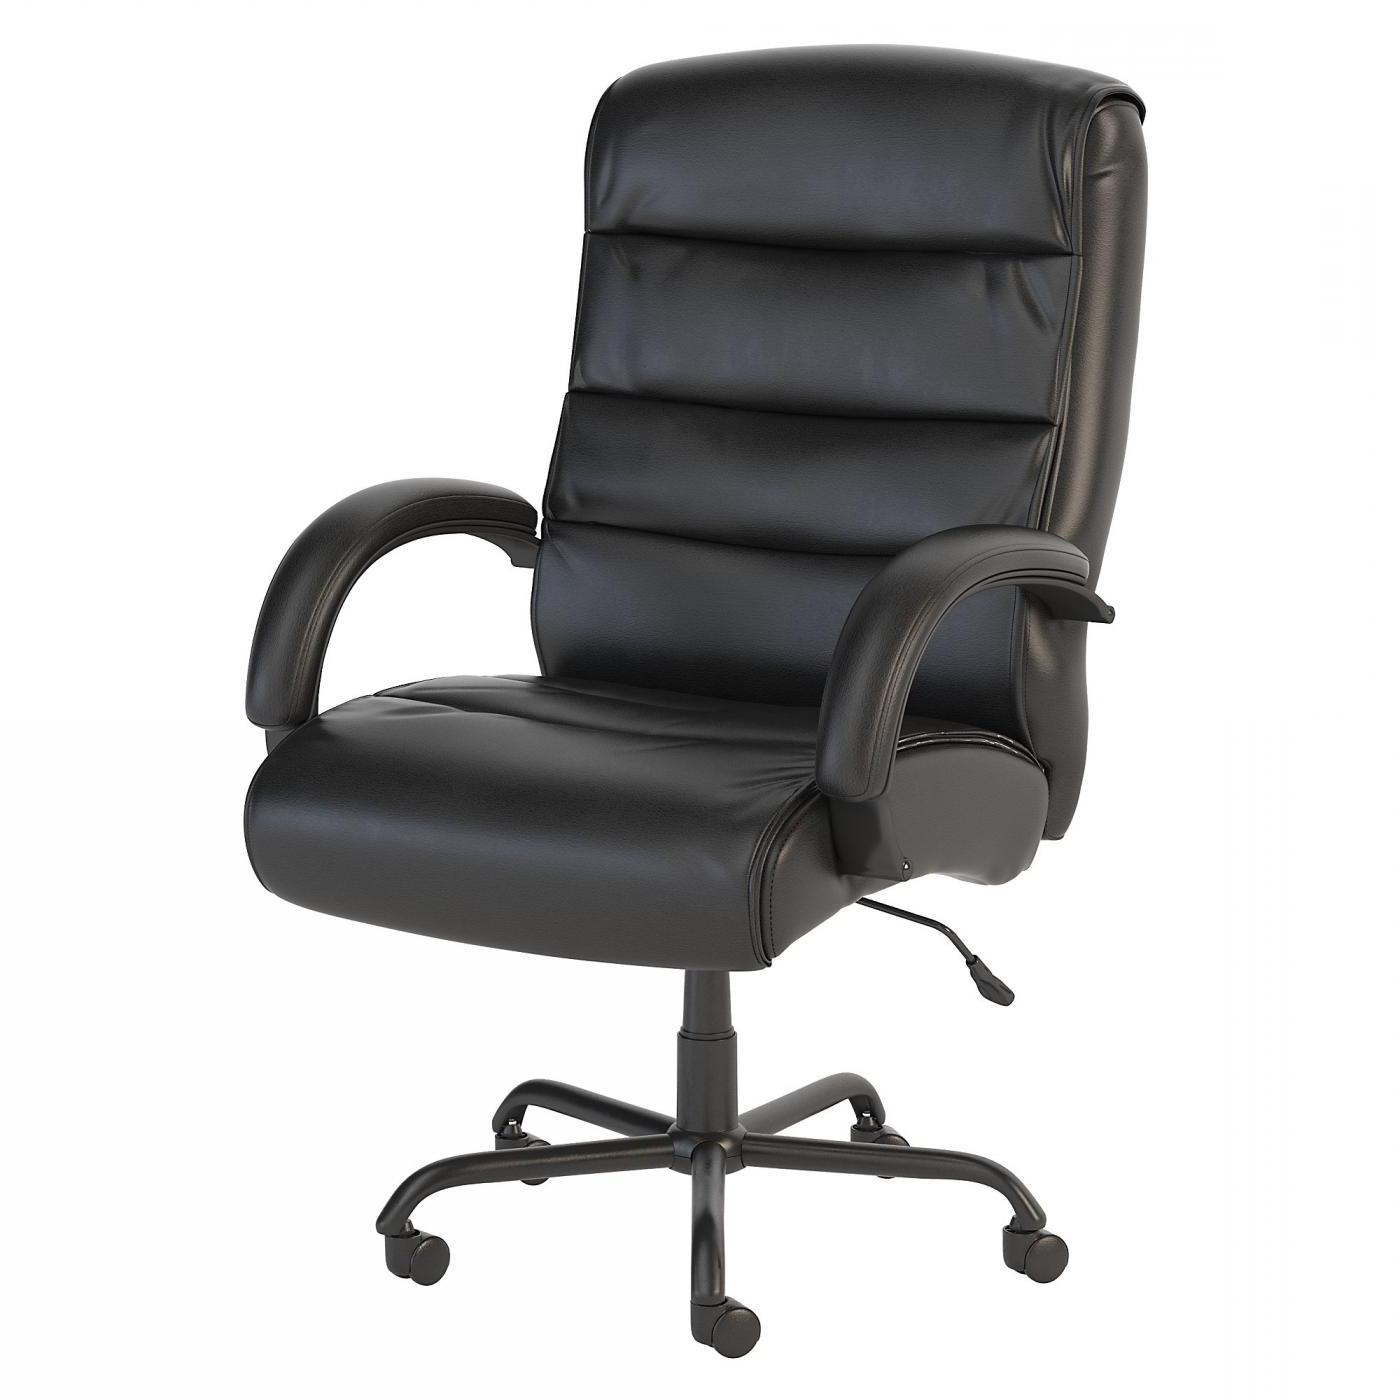 BUSH BUSINESS FURNITURE SOFT SENSE BIG AND TALL HIGH BACK LEATHER EXECUTIVE OFFICE CHAIR. FREE SHIPPING.  SALE DEDUCT 10% MORE ENTER '10percent' IN COUPON CODE BOX WHILE CHECKING OUT.